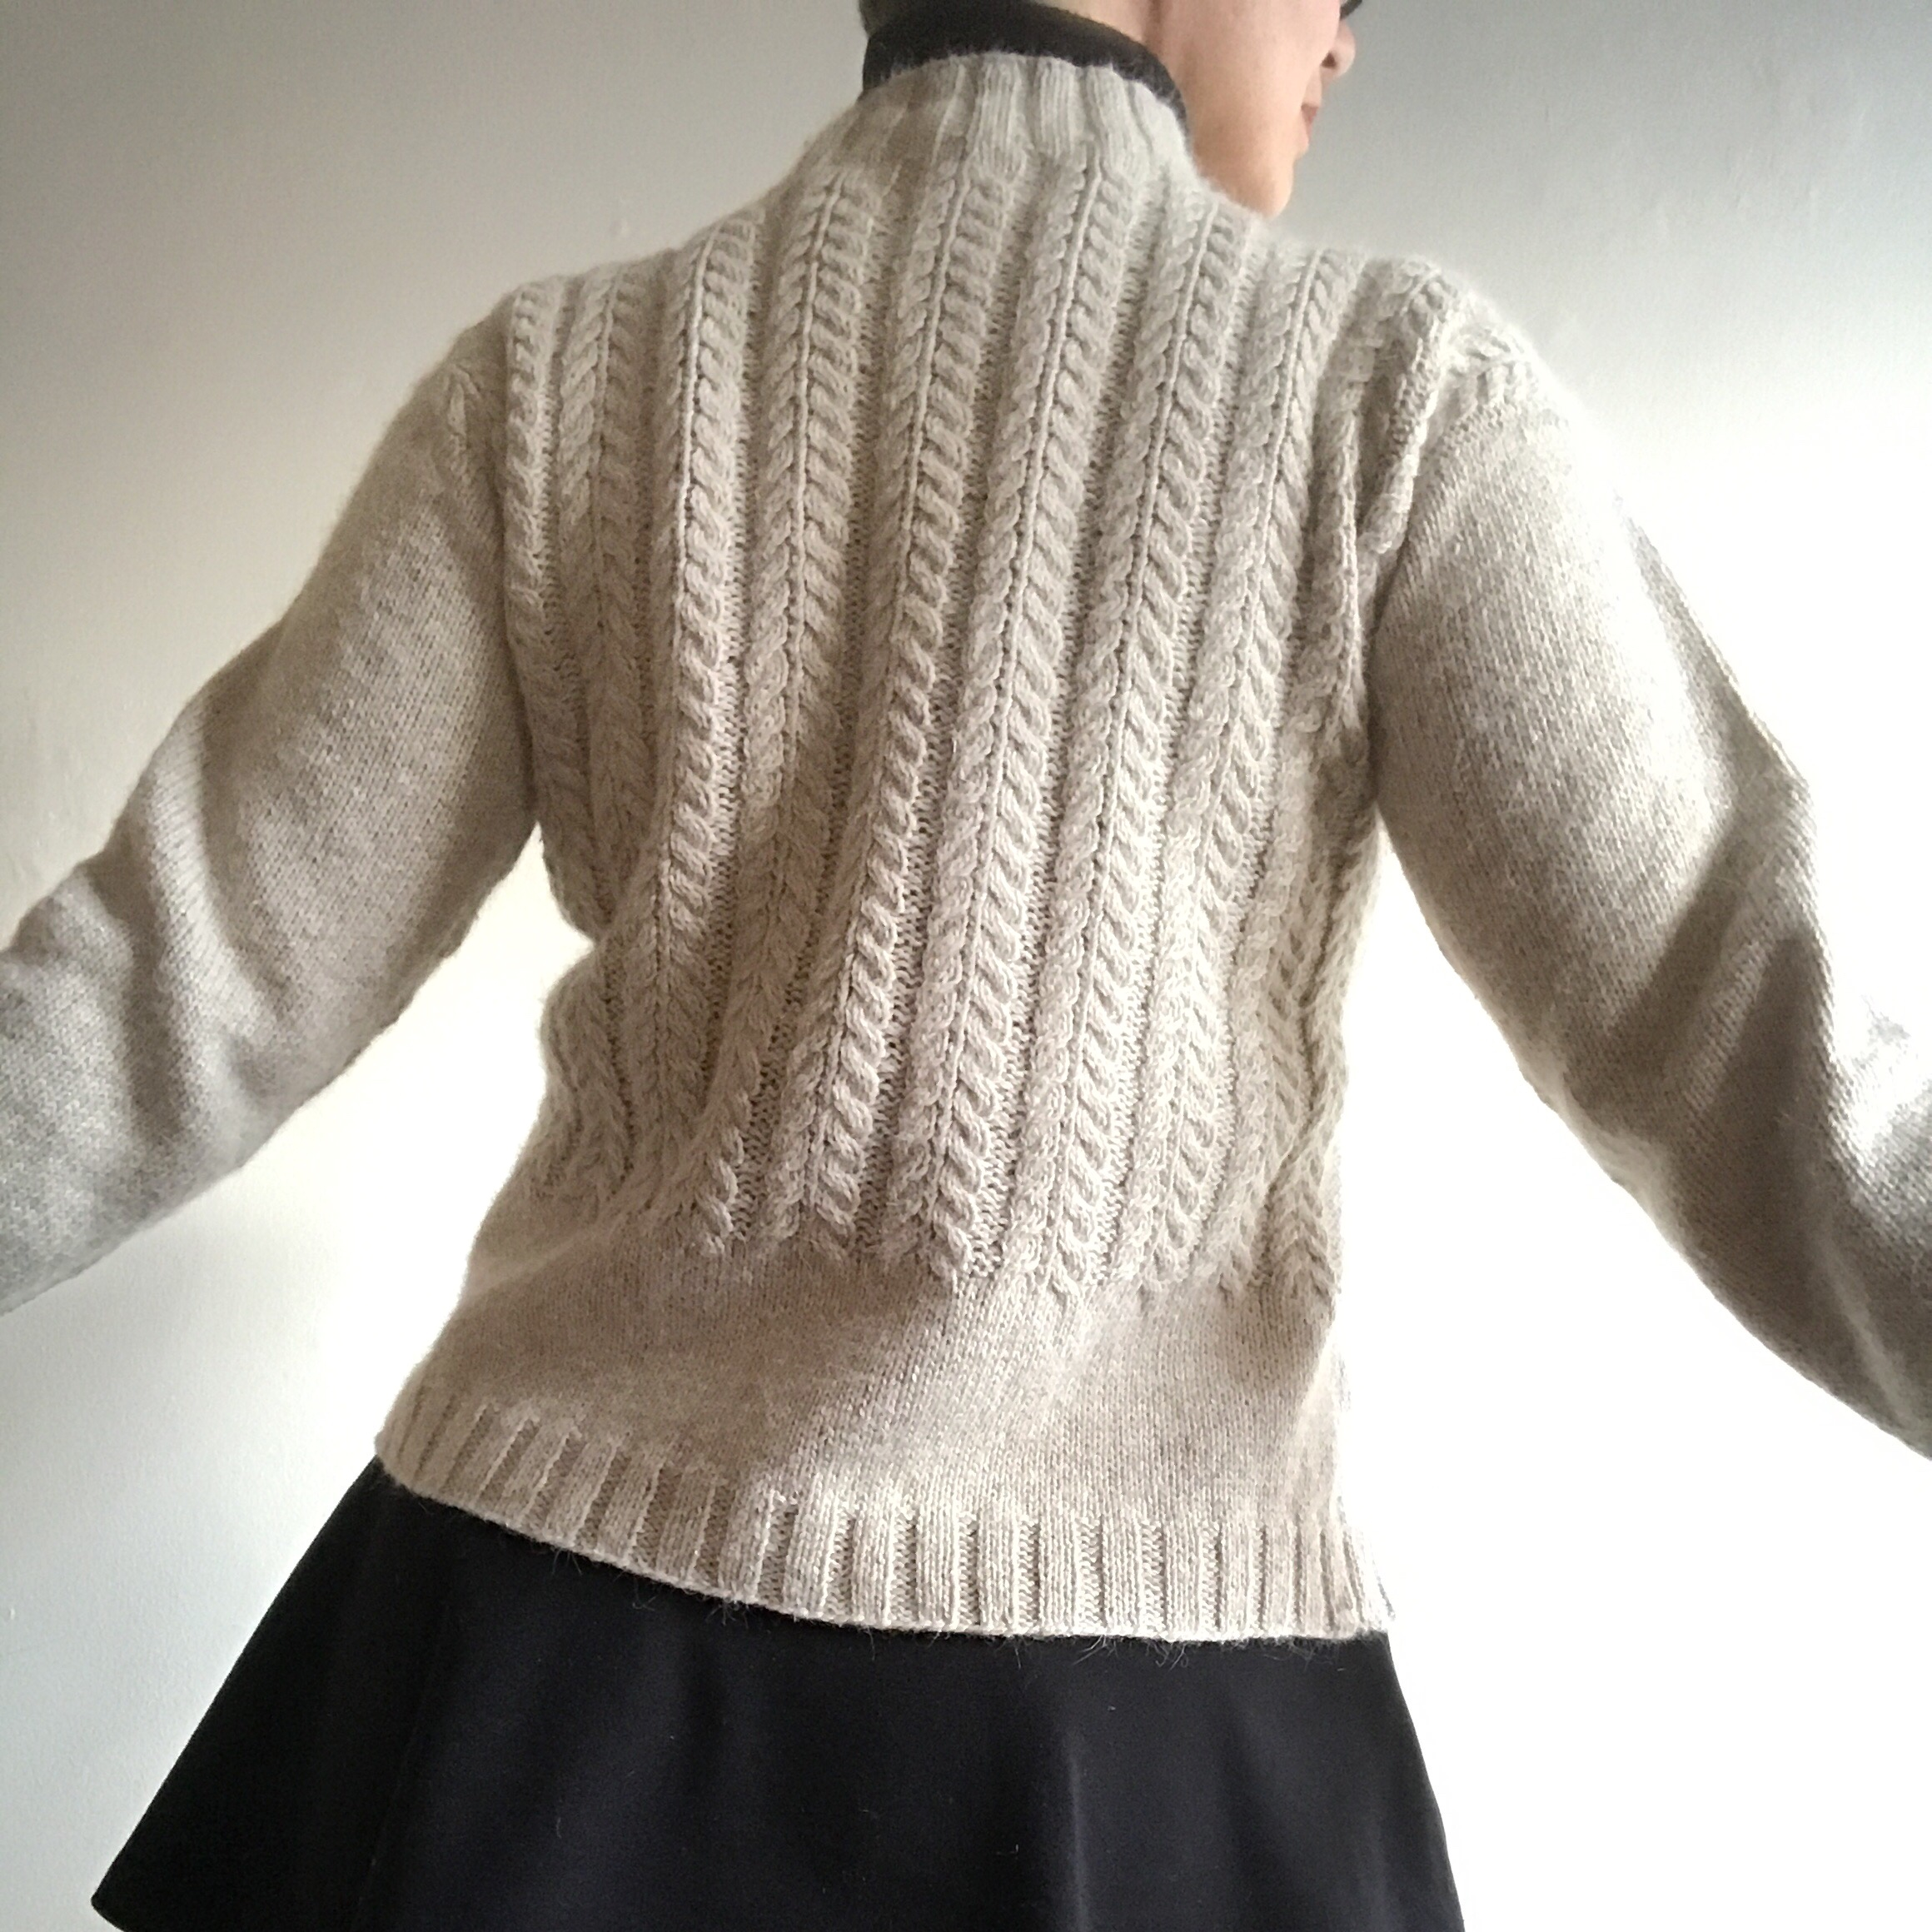 """January Gansey - January Gansey is done! Kenzie knit at 25 st over 4"""" makes an incredibly substantial fabric. And I might want underarm gussets in all of my sweaters now! I won't go to the trouble, but it's wonderful to have the added ease of movement without much extra bulk."""